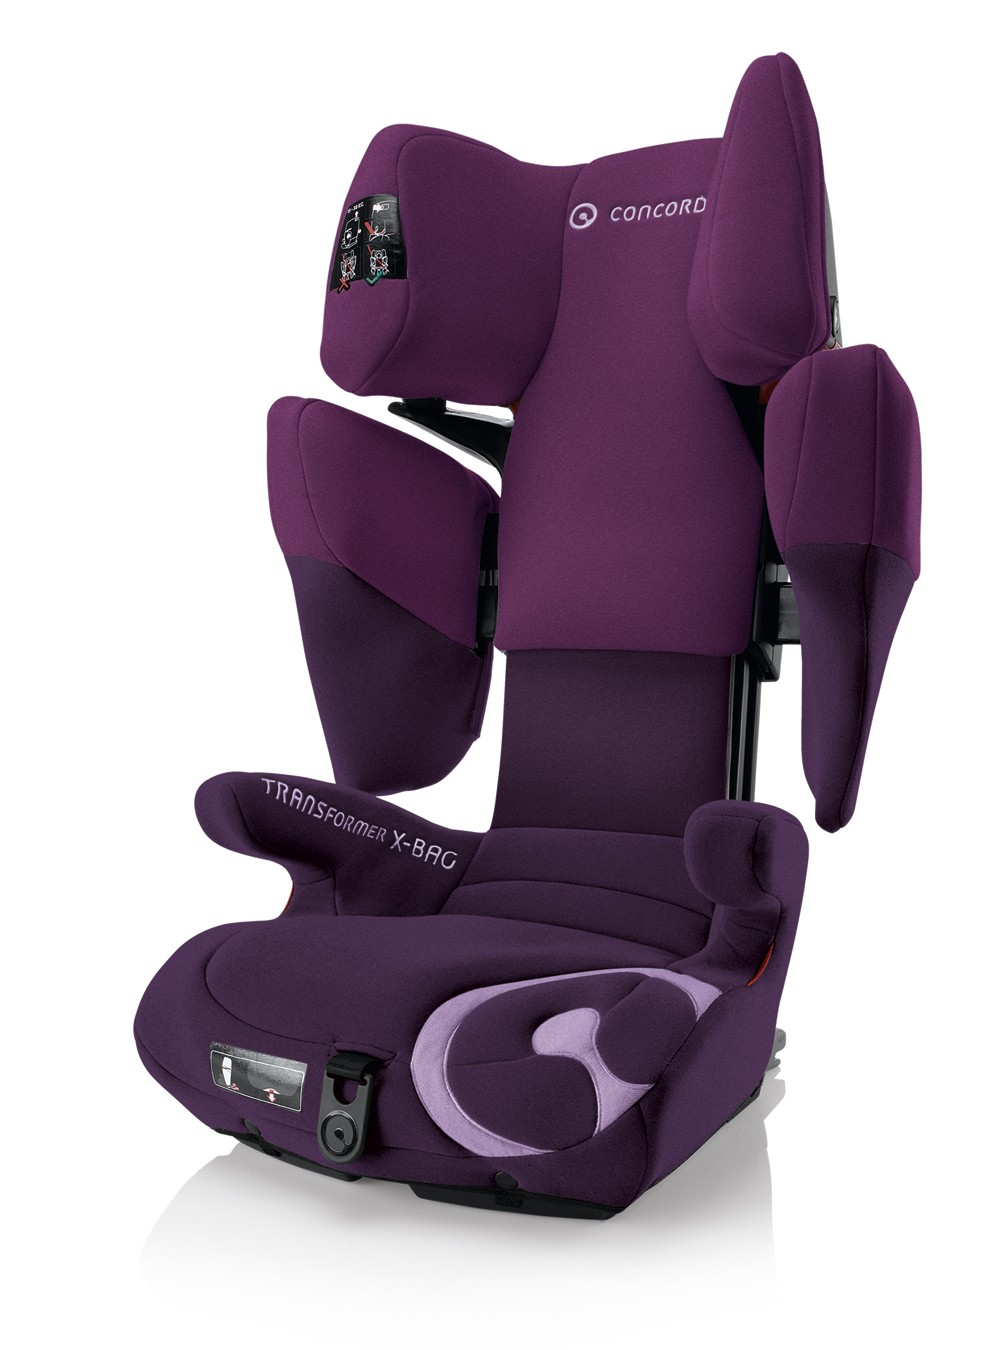 Concord Kinderautositz Transformer X-Bag Plum Purple